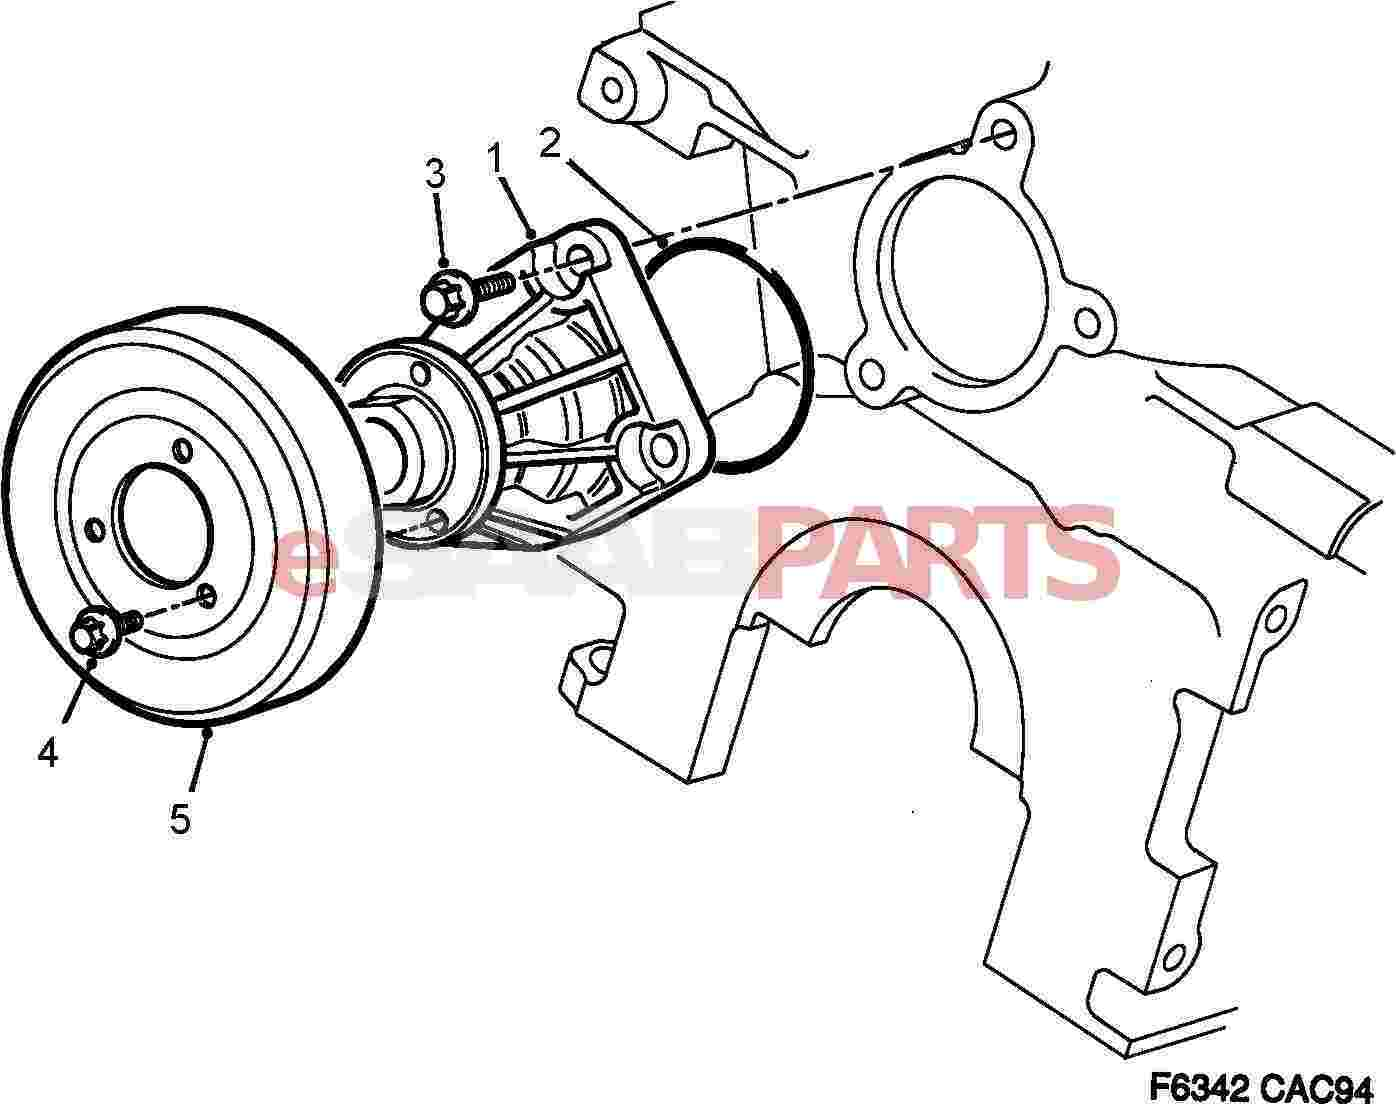 90502558 moreover 392103 Trani Experts Quattro And FWD Trani The Same Tailpieces Interchangable furthermore Atf Flush Step Step 5157 also Tech besides 12797723. on fwd gearbox